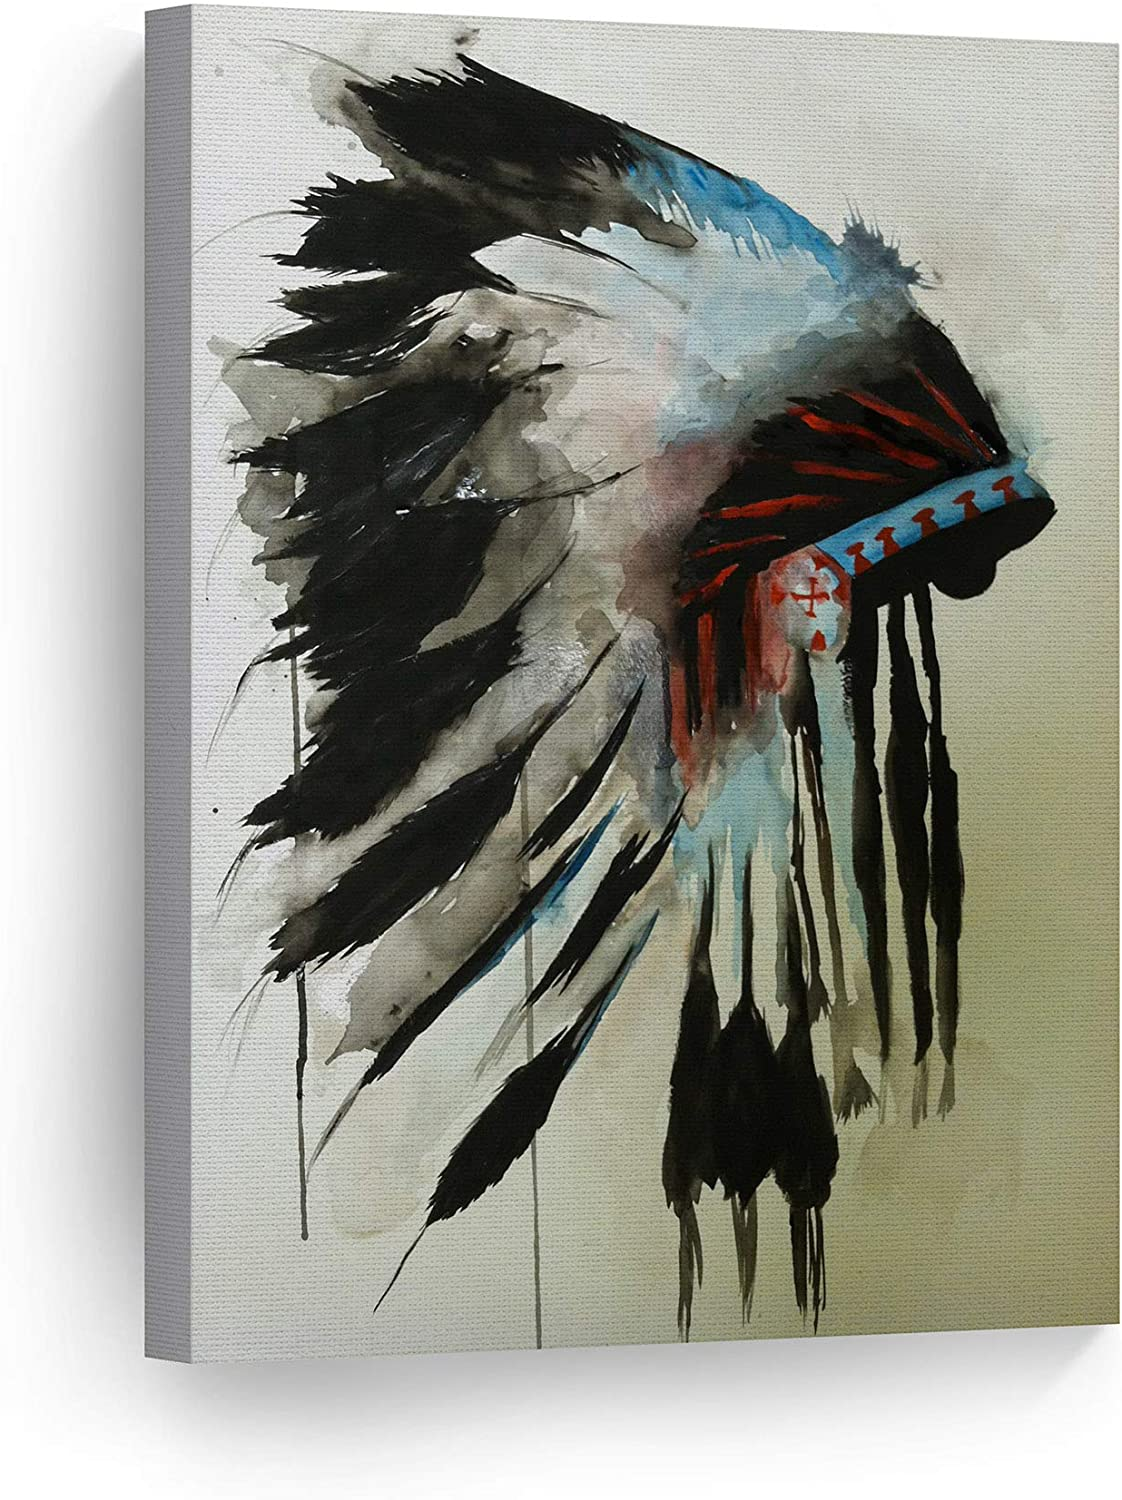 Amazon Com Smileartdesign Indian Wall Art Native American Chiefs Headdress Feathered Watercolor Canvas Print Home Decor Decorative Artwork Living Room Bedroom Wall Decor Ready To Hang Made In Usa 12x8 Posters